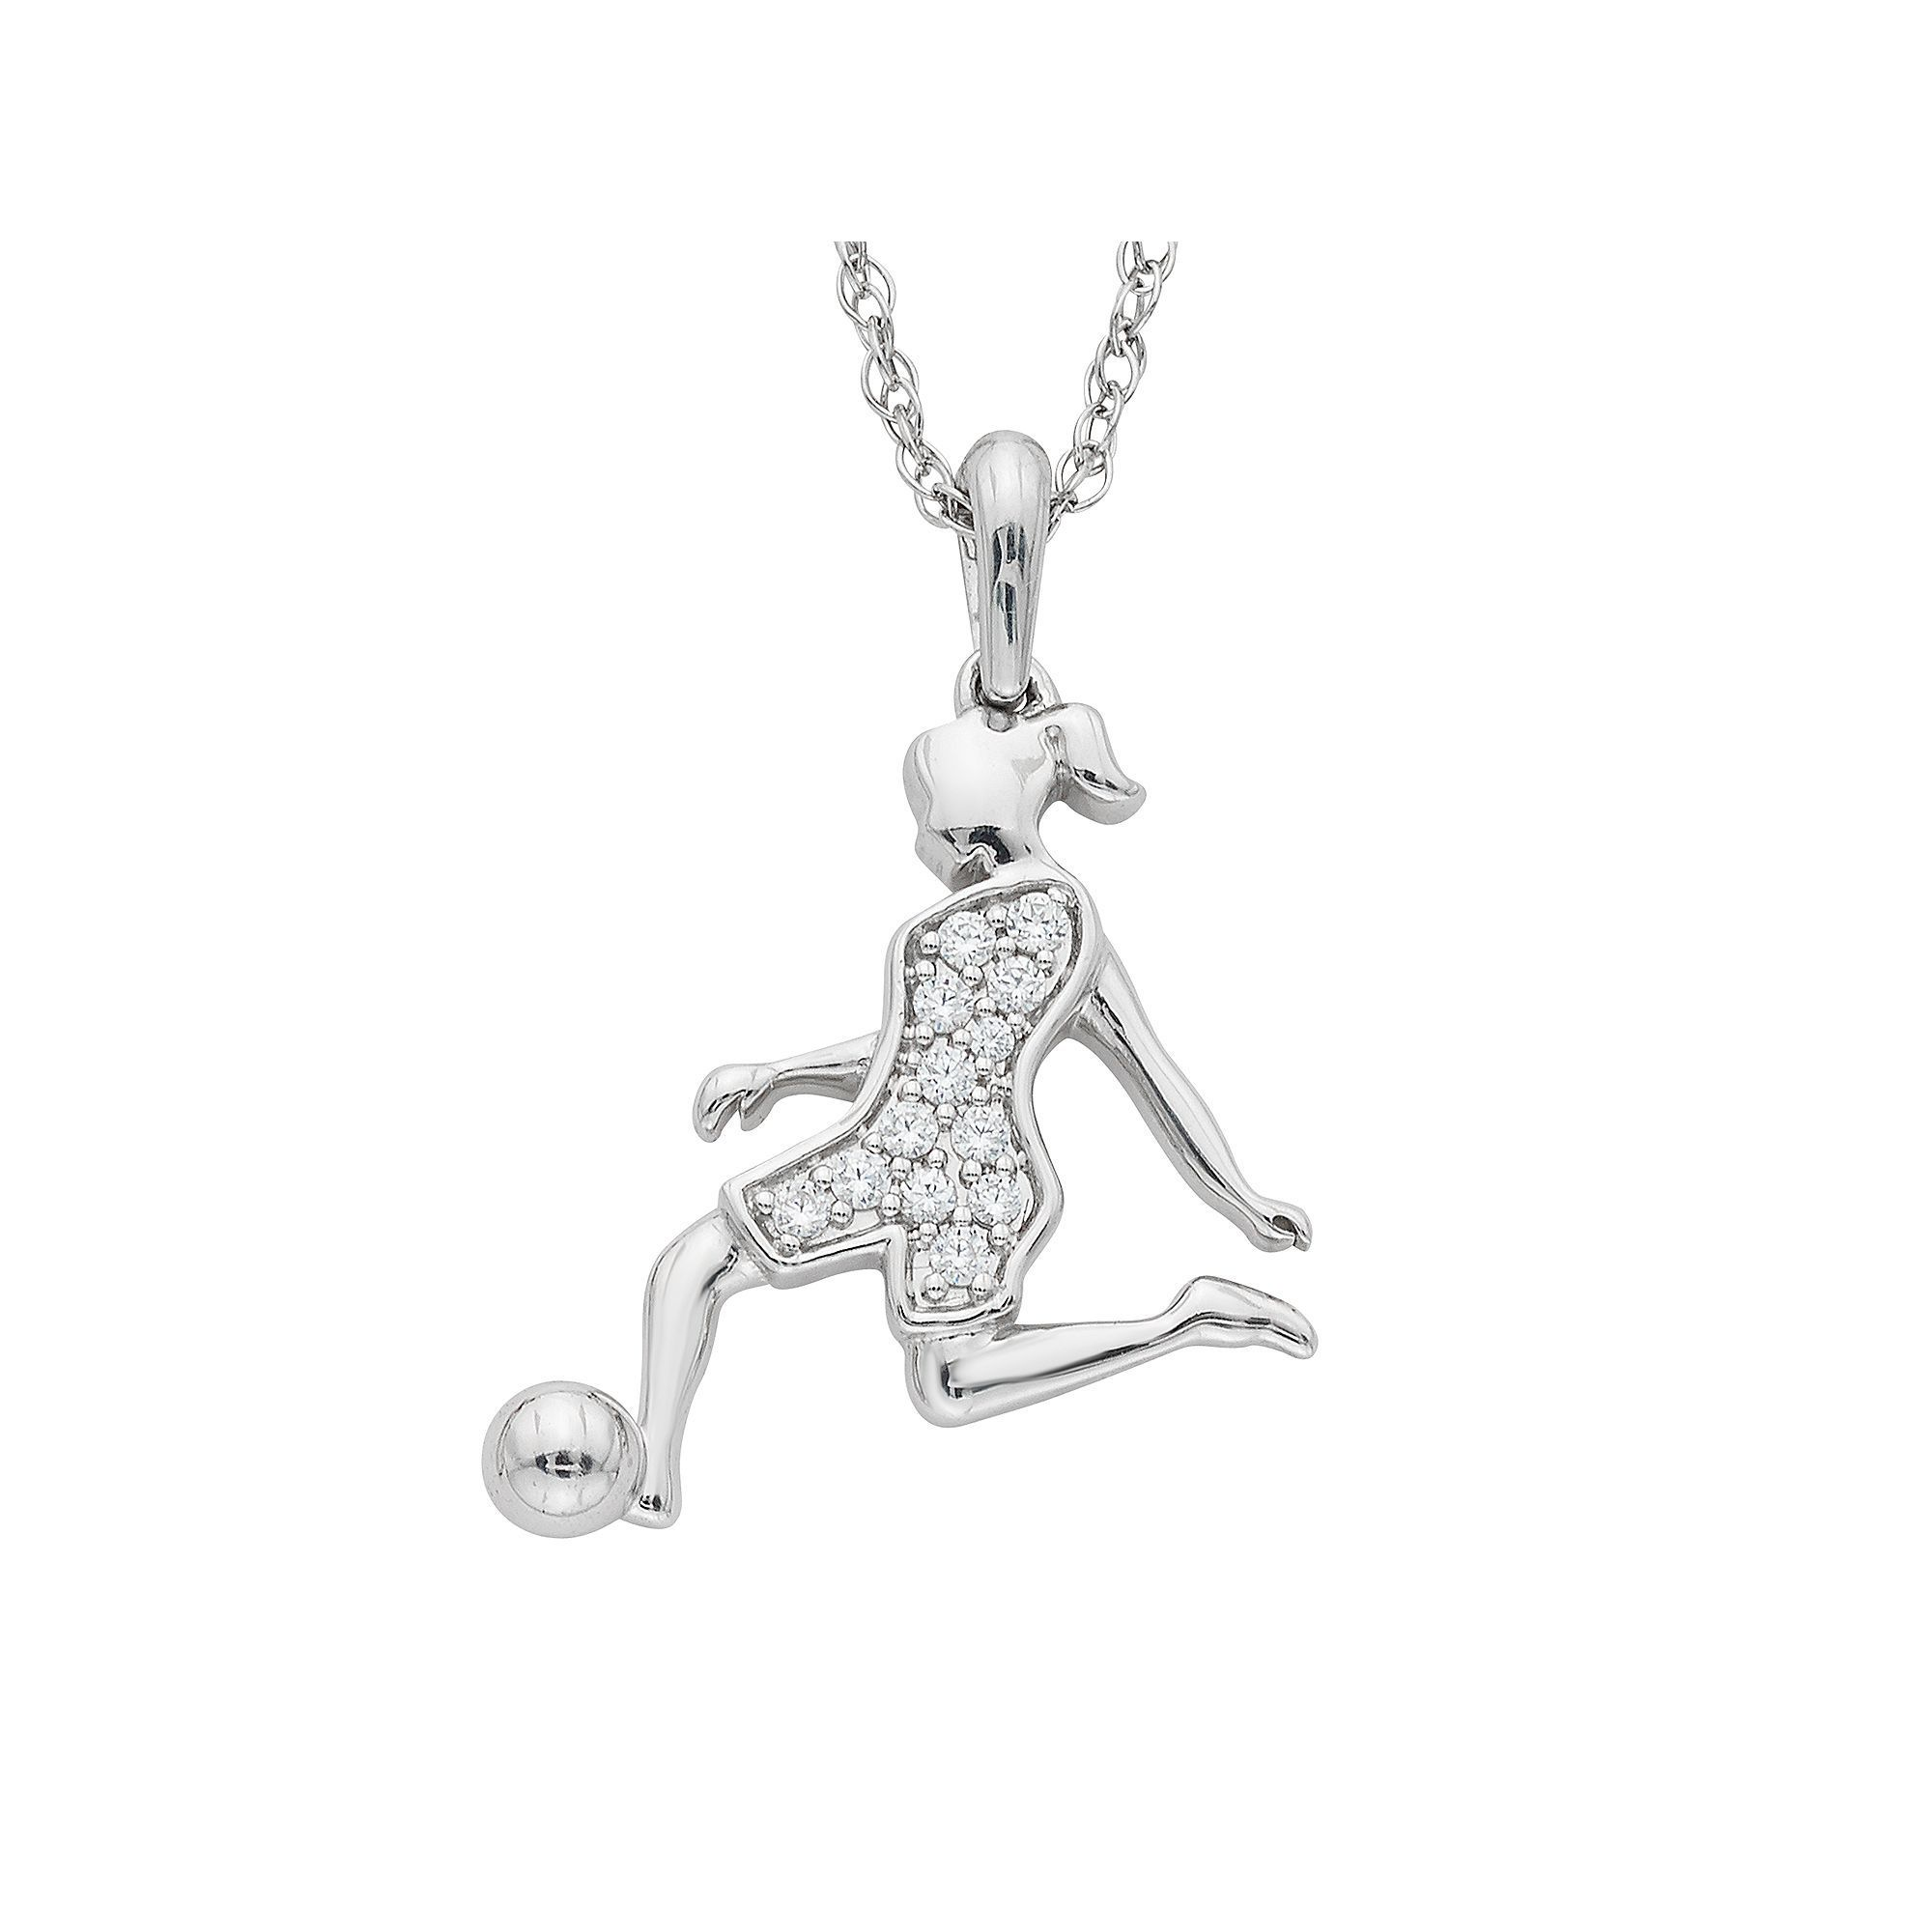 by soccer necklace pendant pmwx fullxfull listing jewelry cleat il silver sold sterling filled wholesaleretail